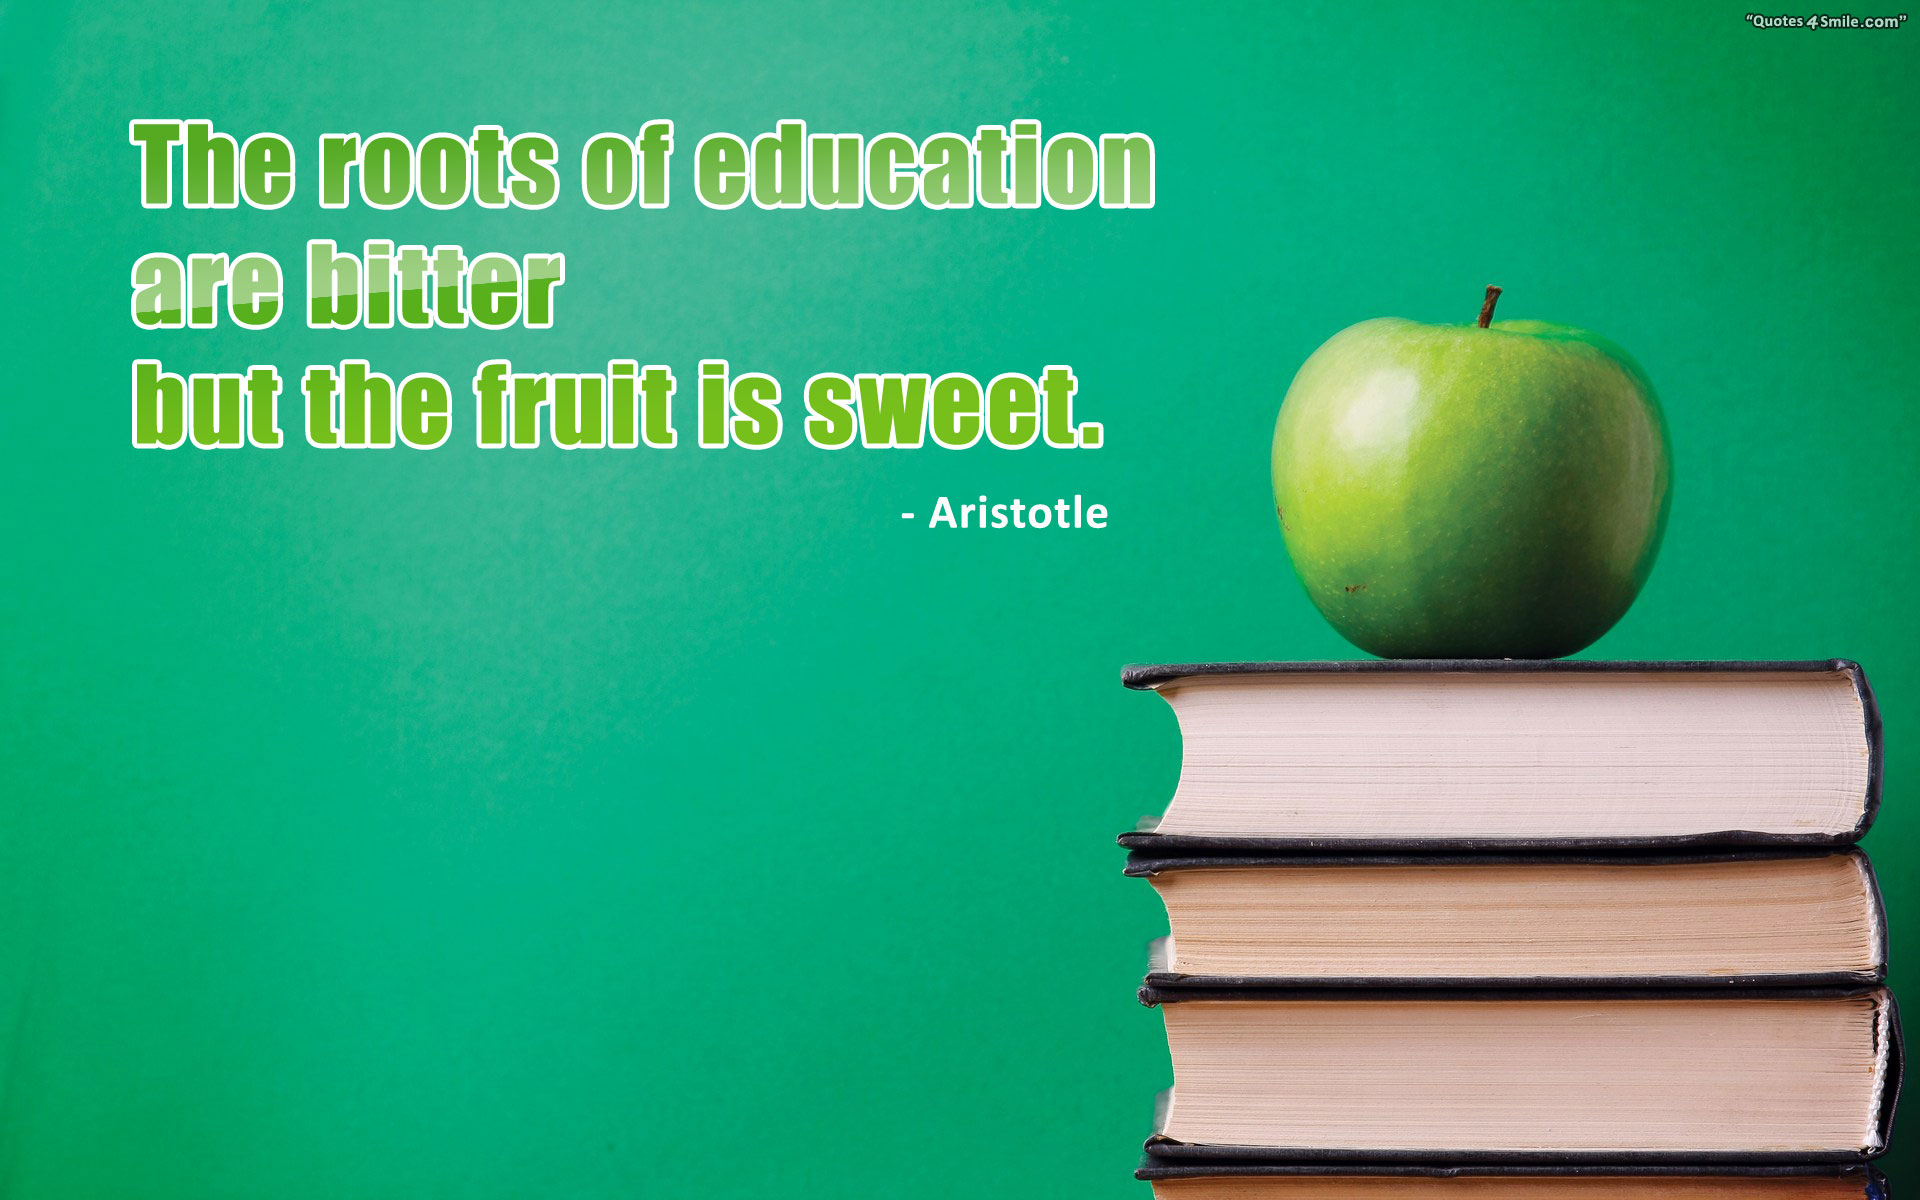 education quotes wallpapers - photo #6